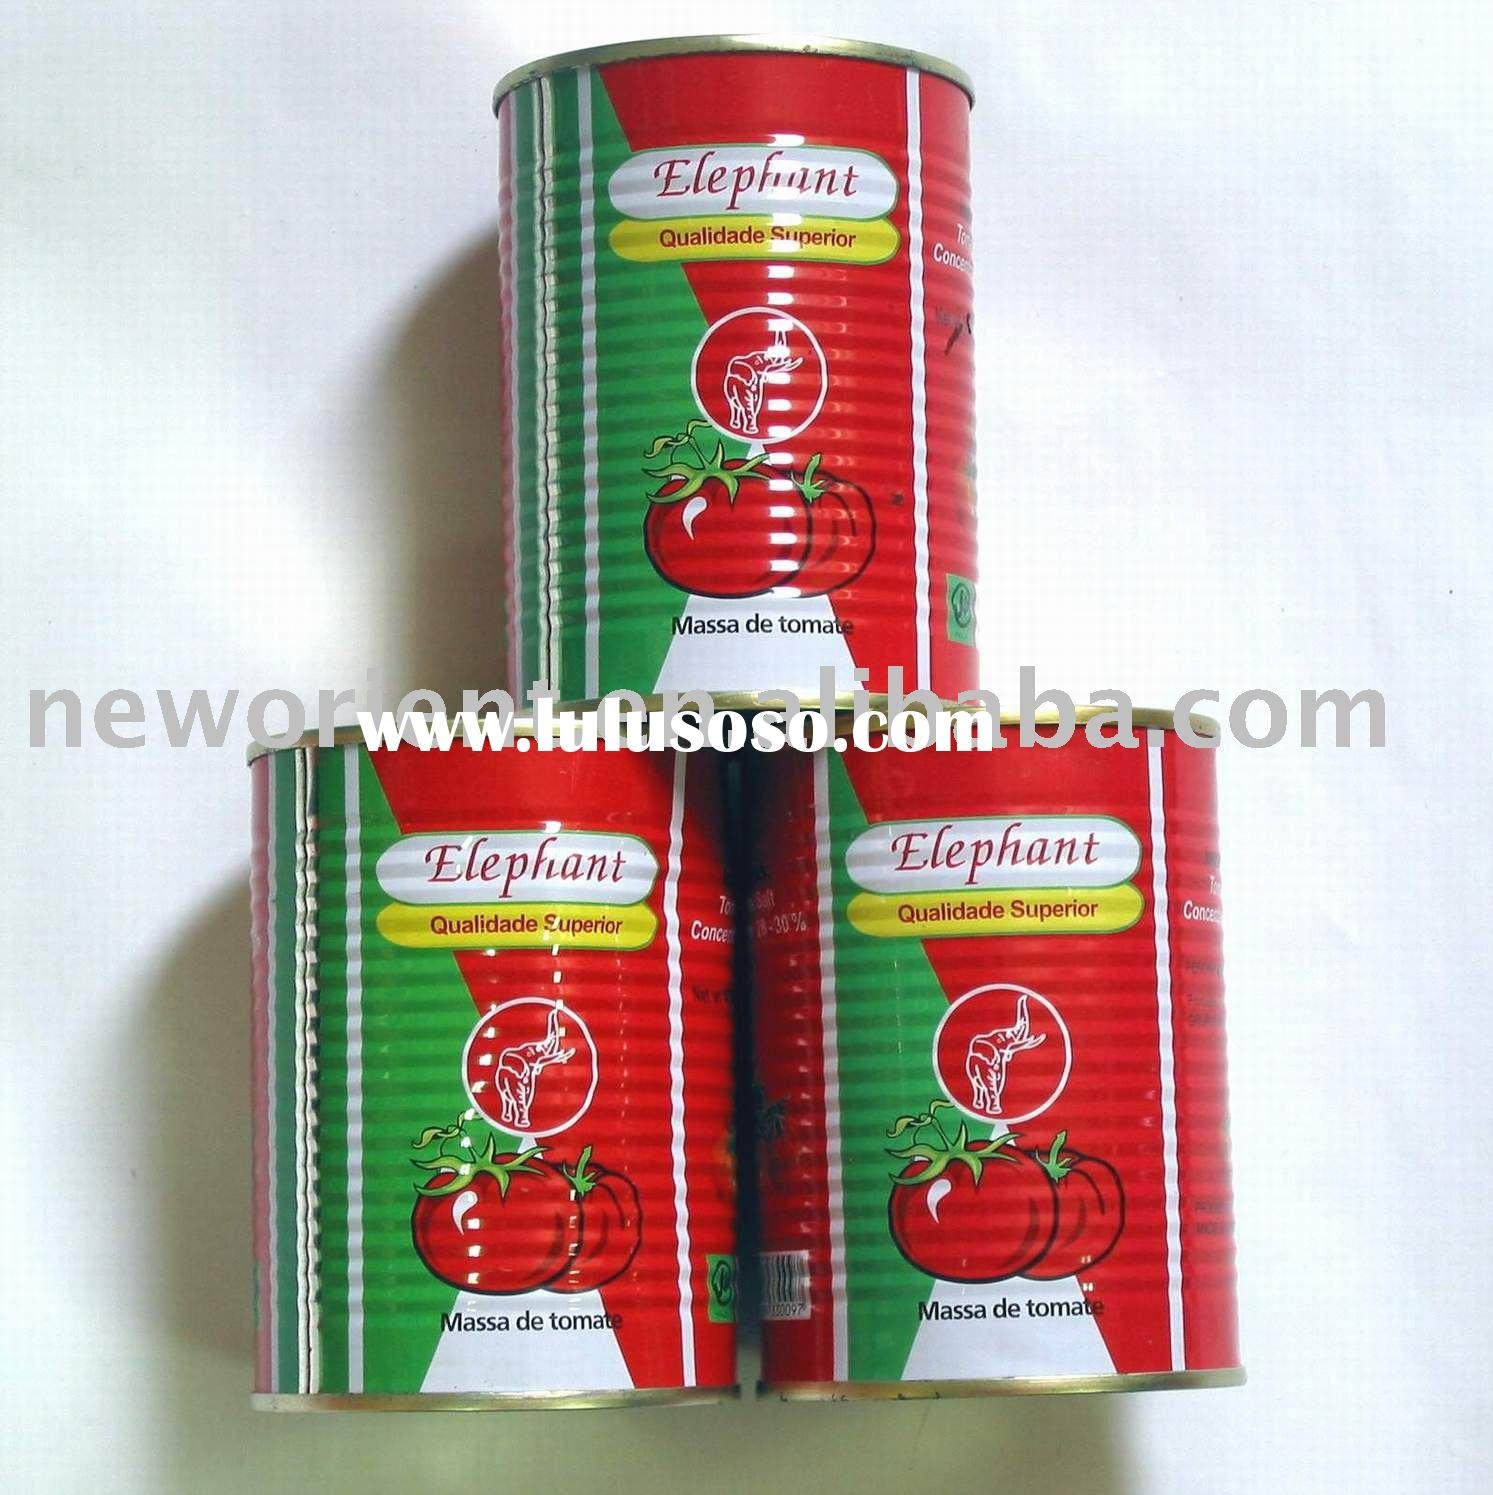 Canned food tomato paste/sauce